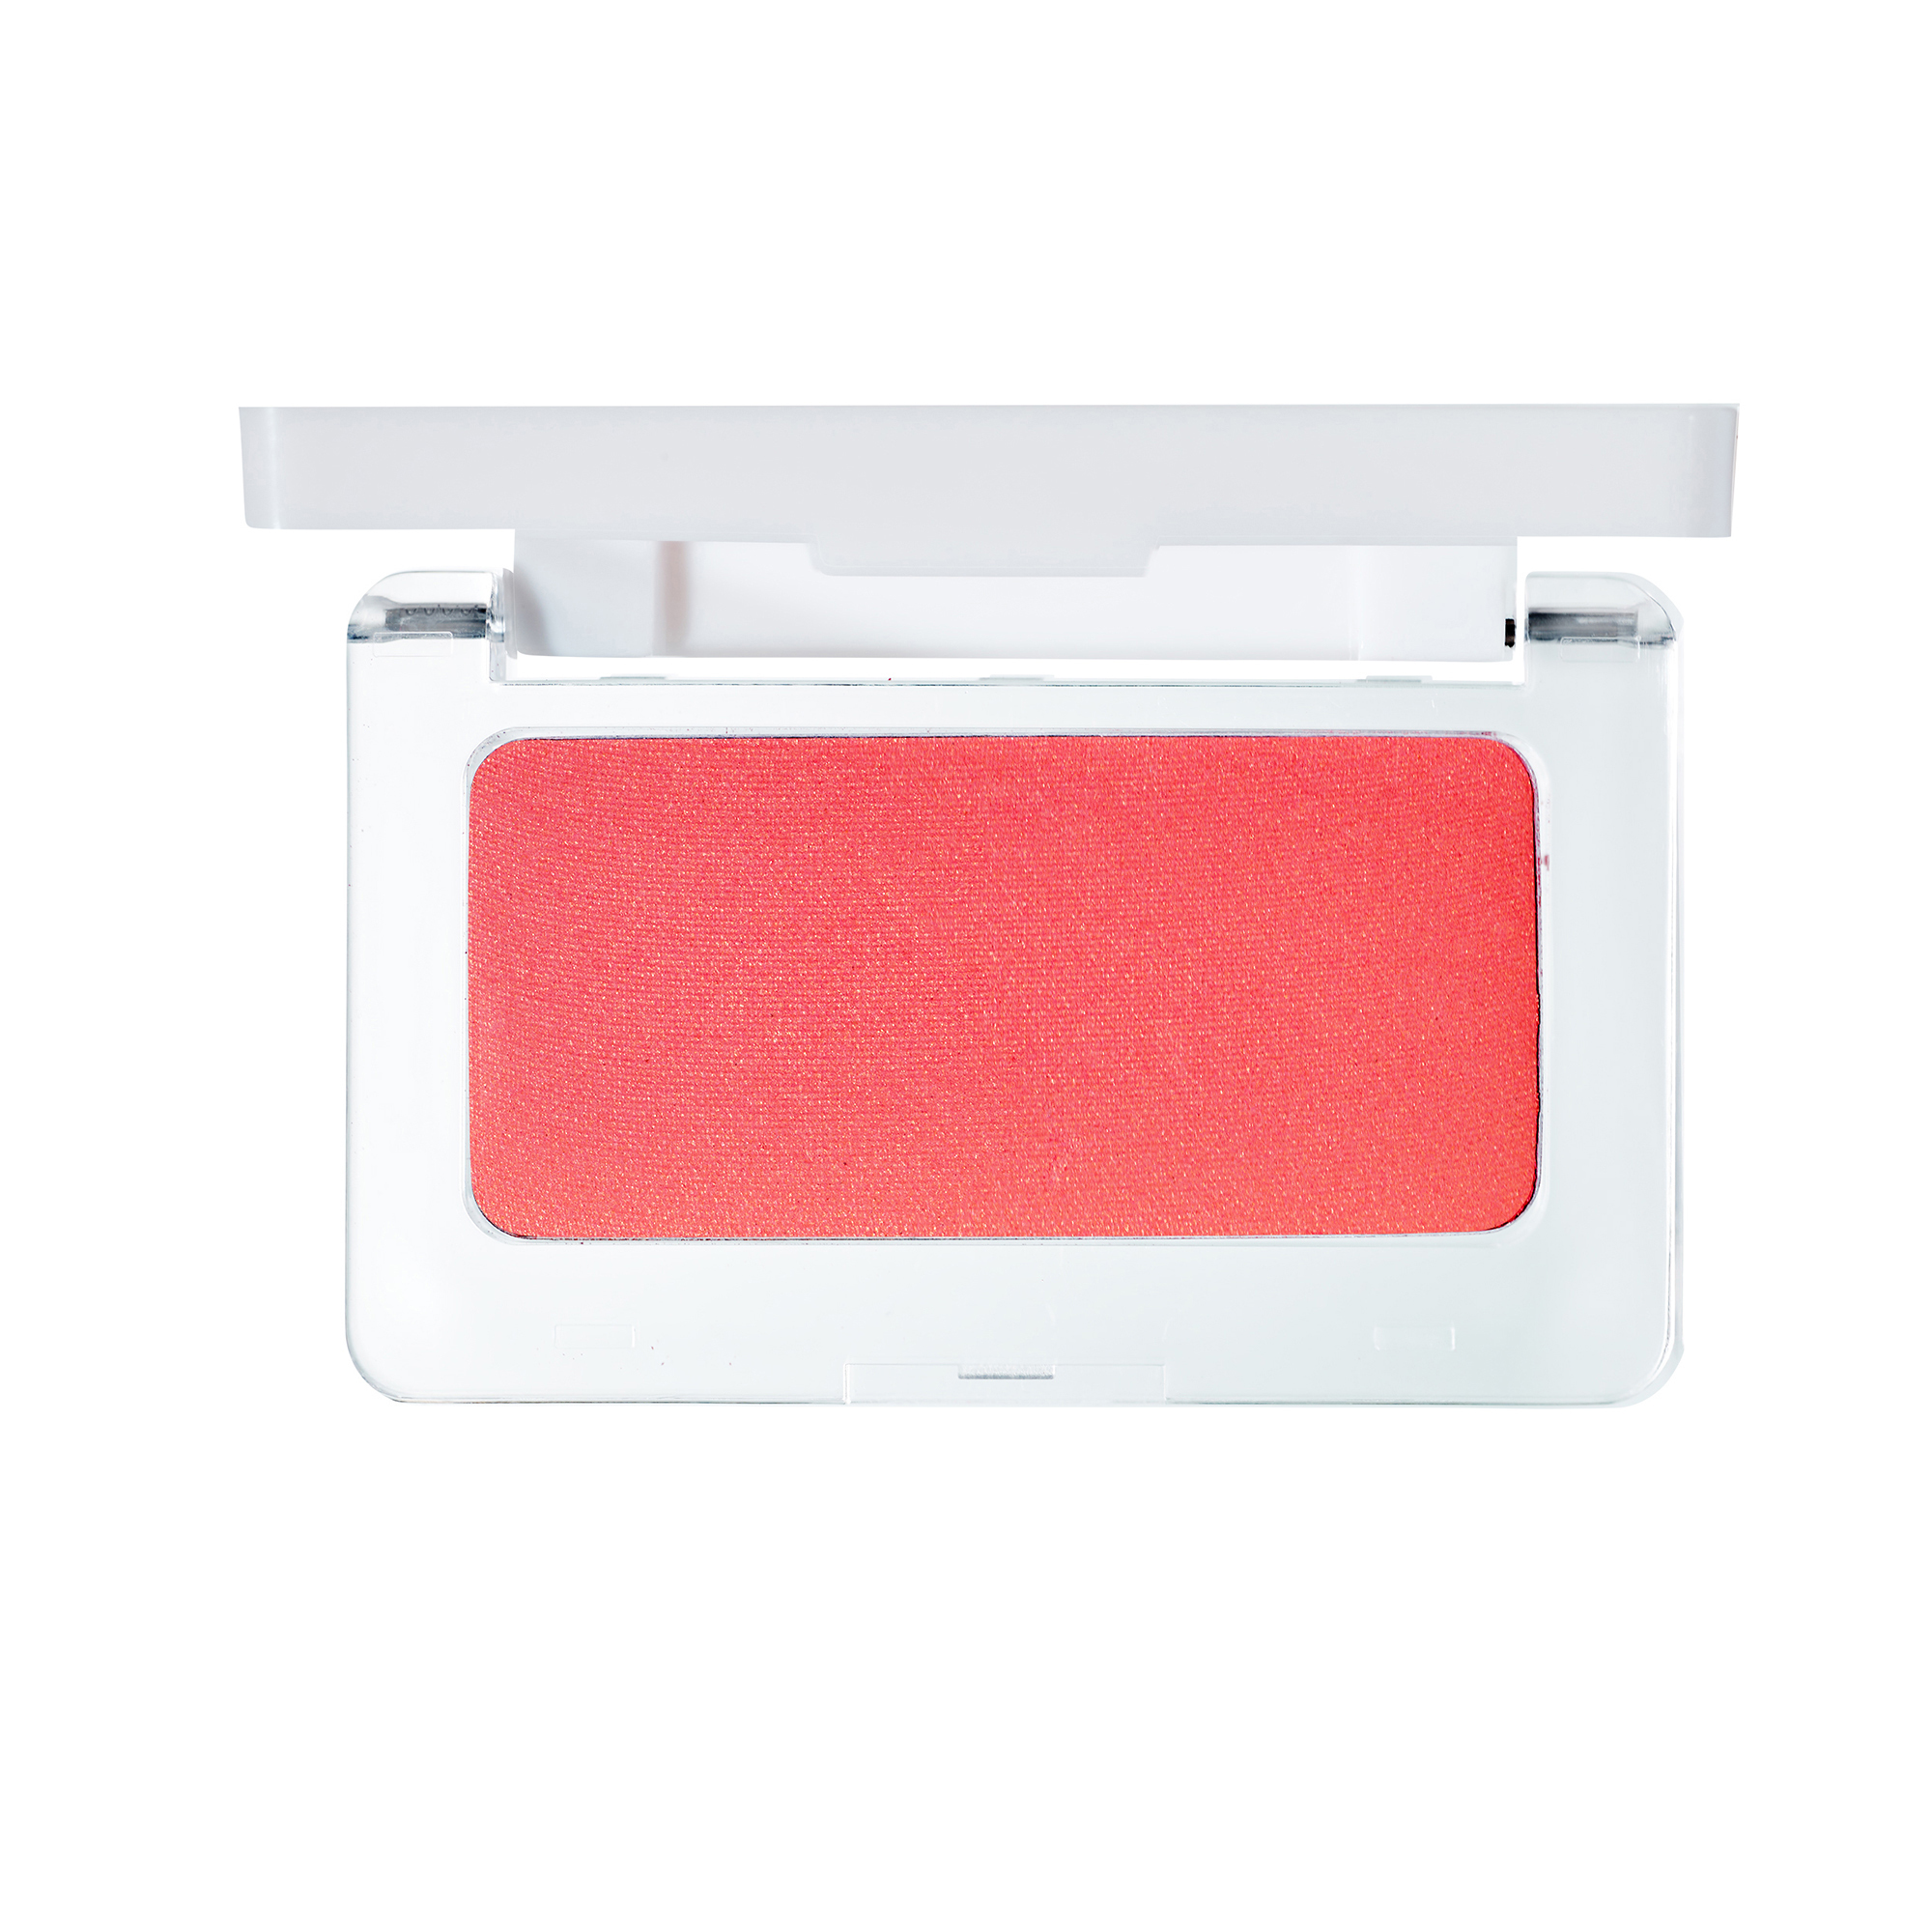 RMS BEAUTY СУХИЕ РУМЯНА PRESSED BLUSH CRUSHED ROSE